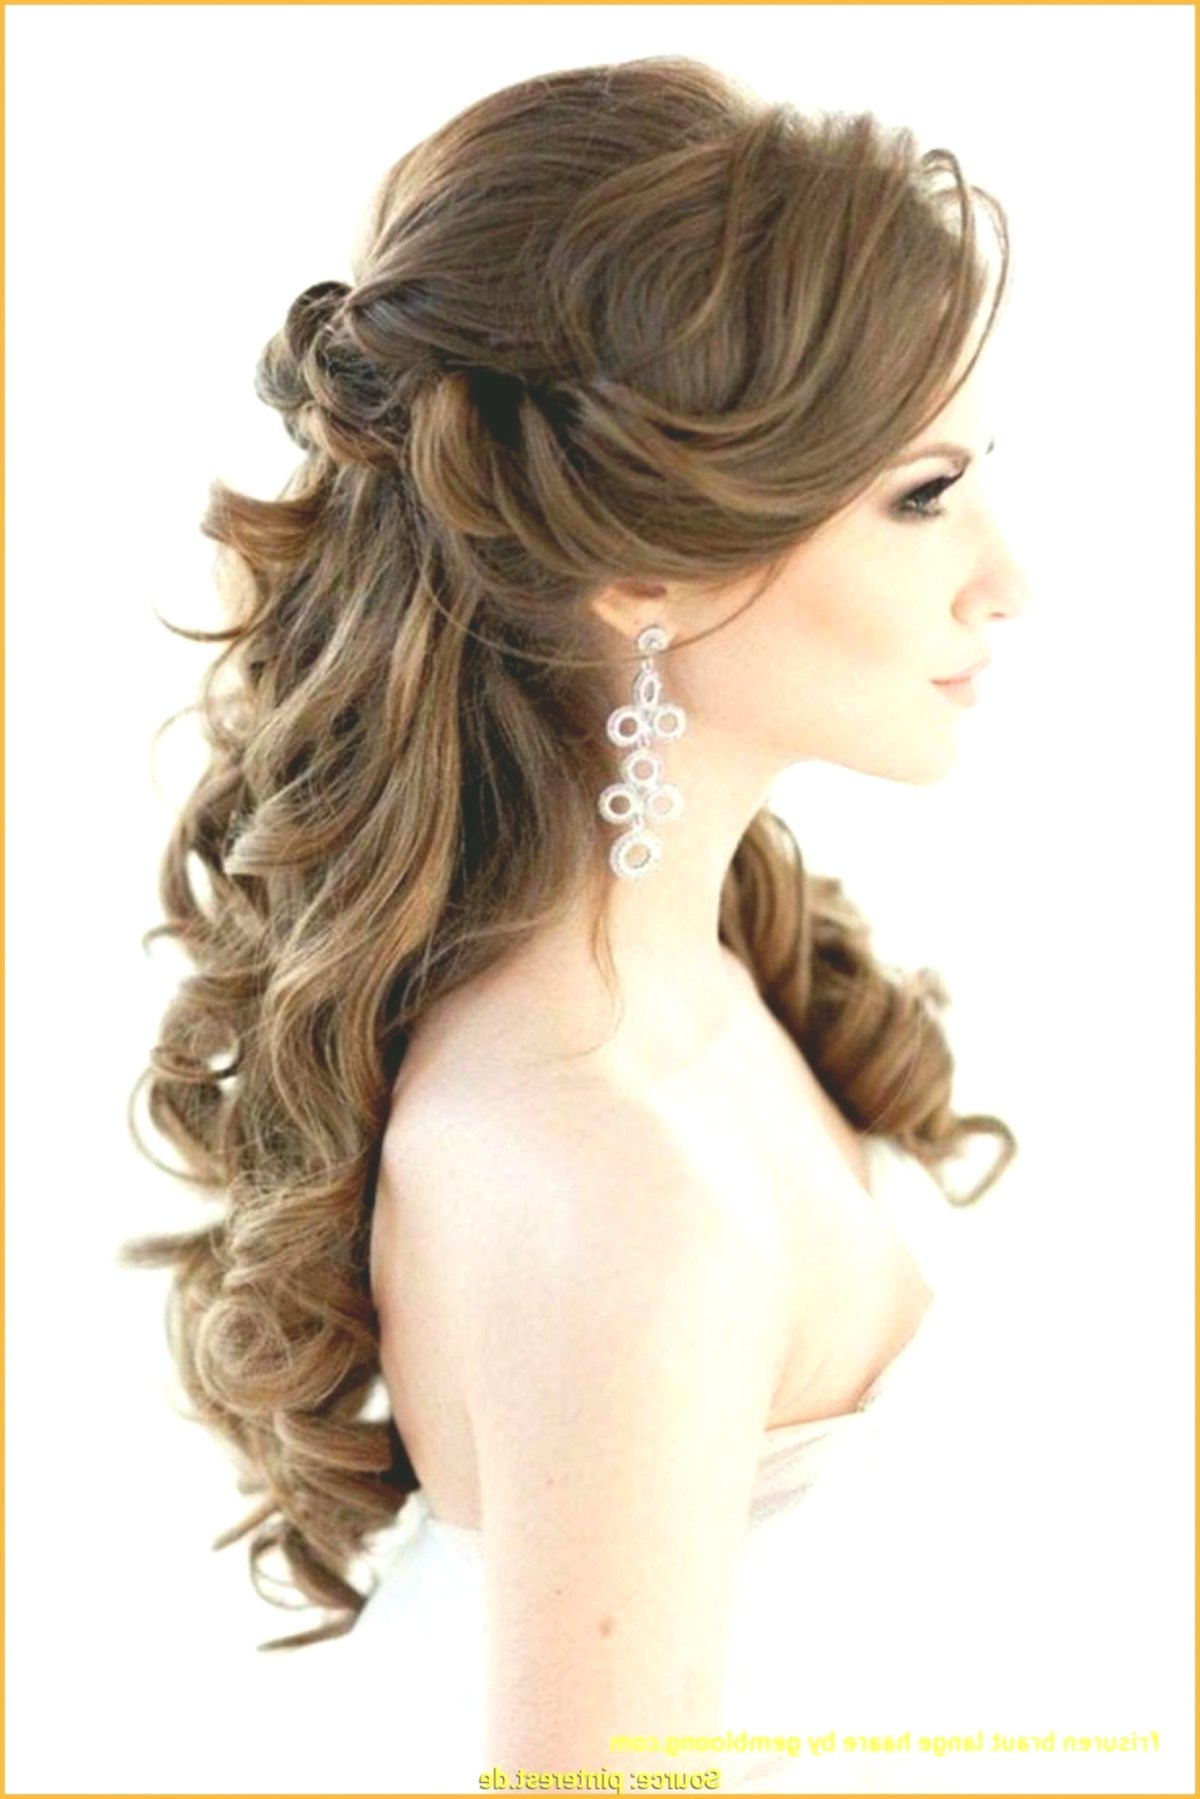 Best of Magma Hair Color Design - Breathtaking Magma Hair Color Models